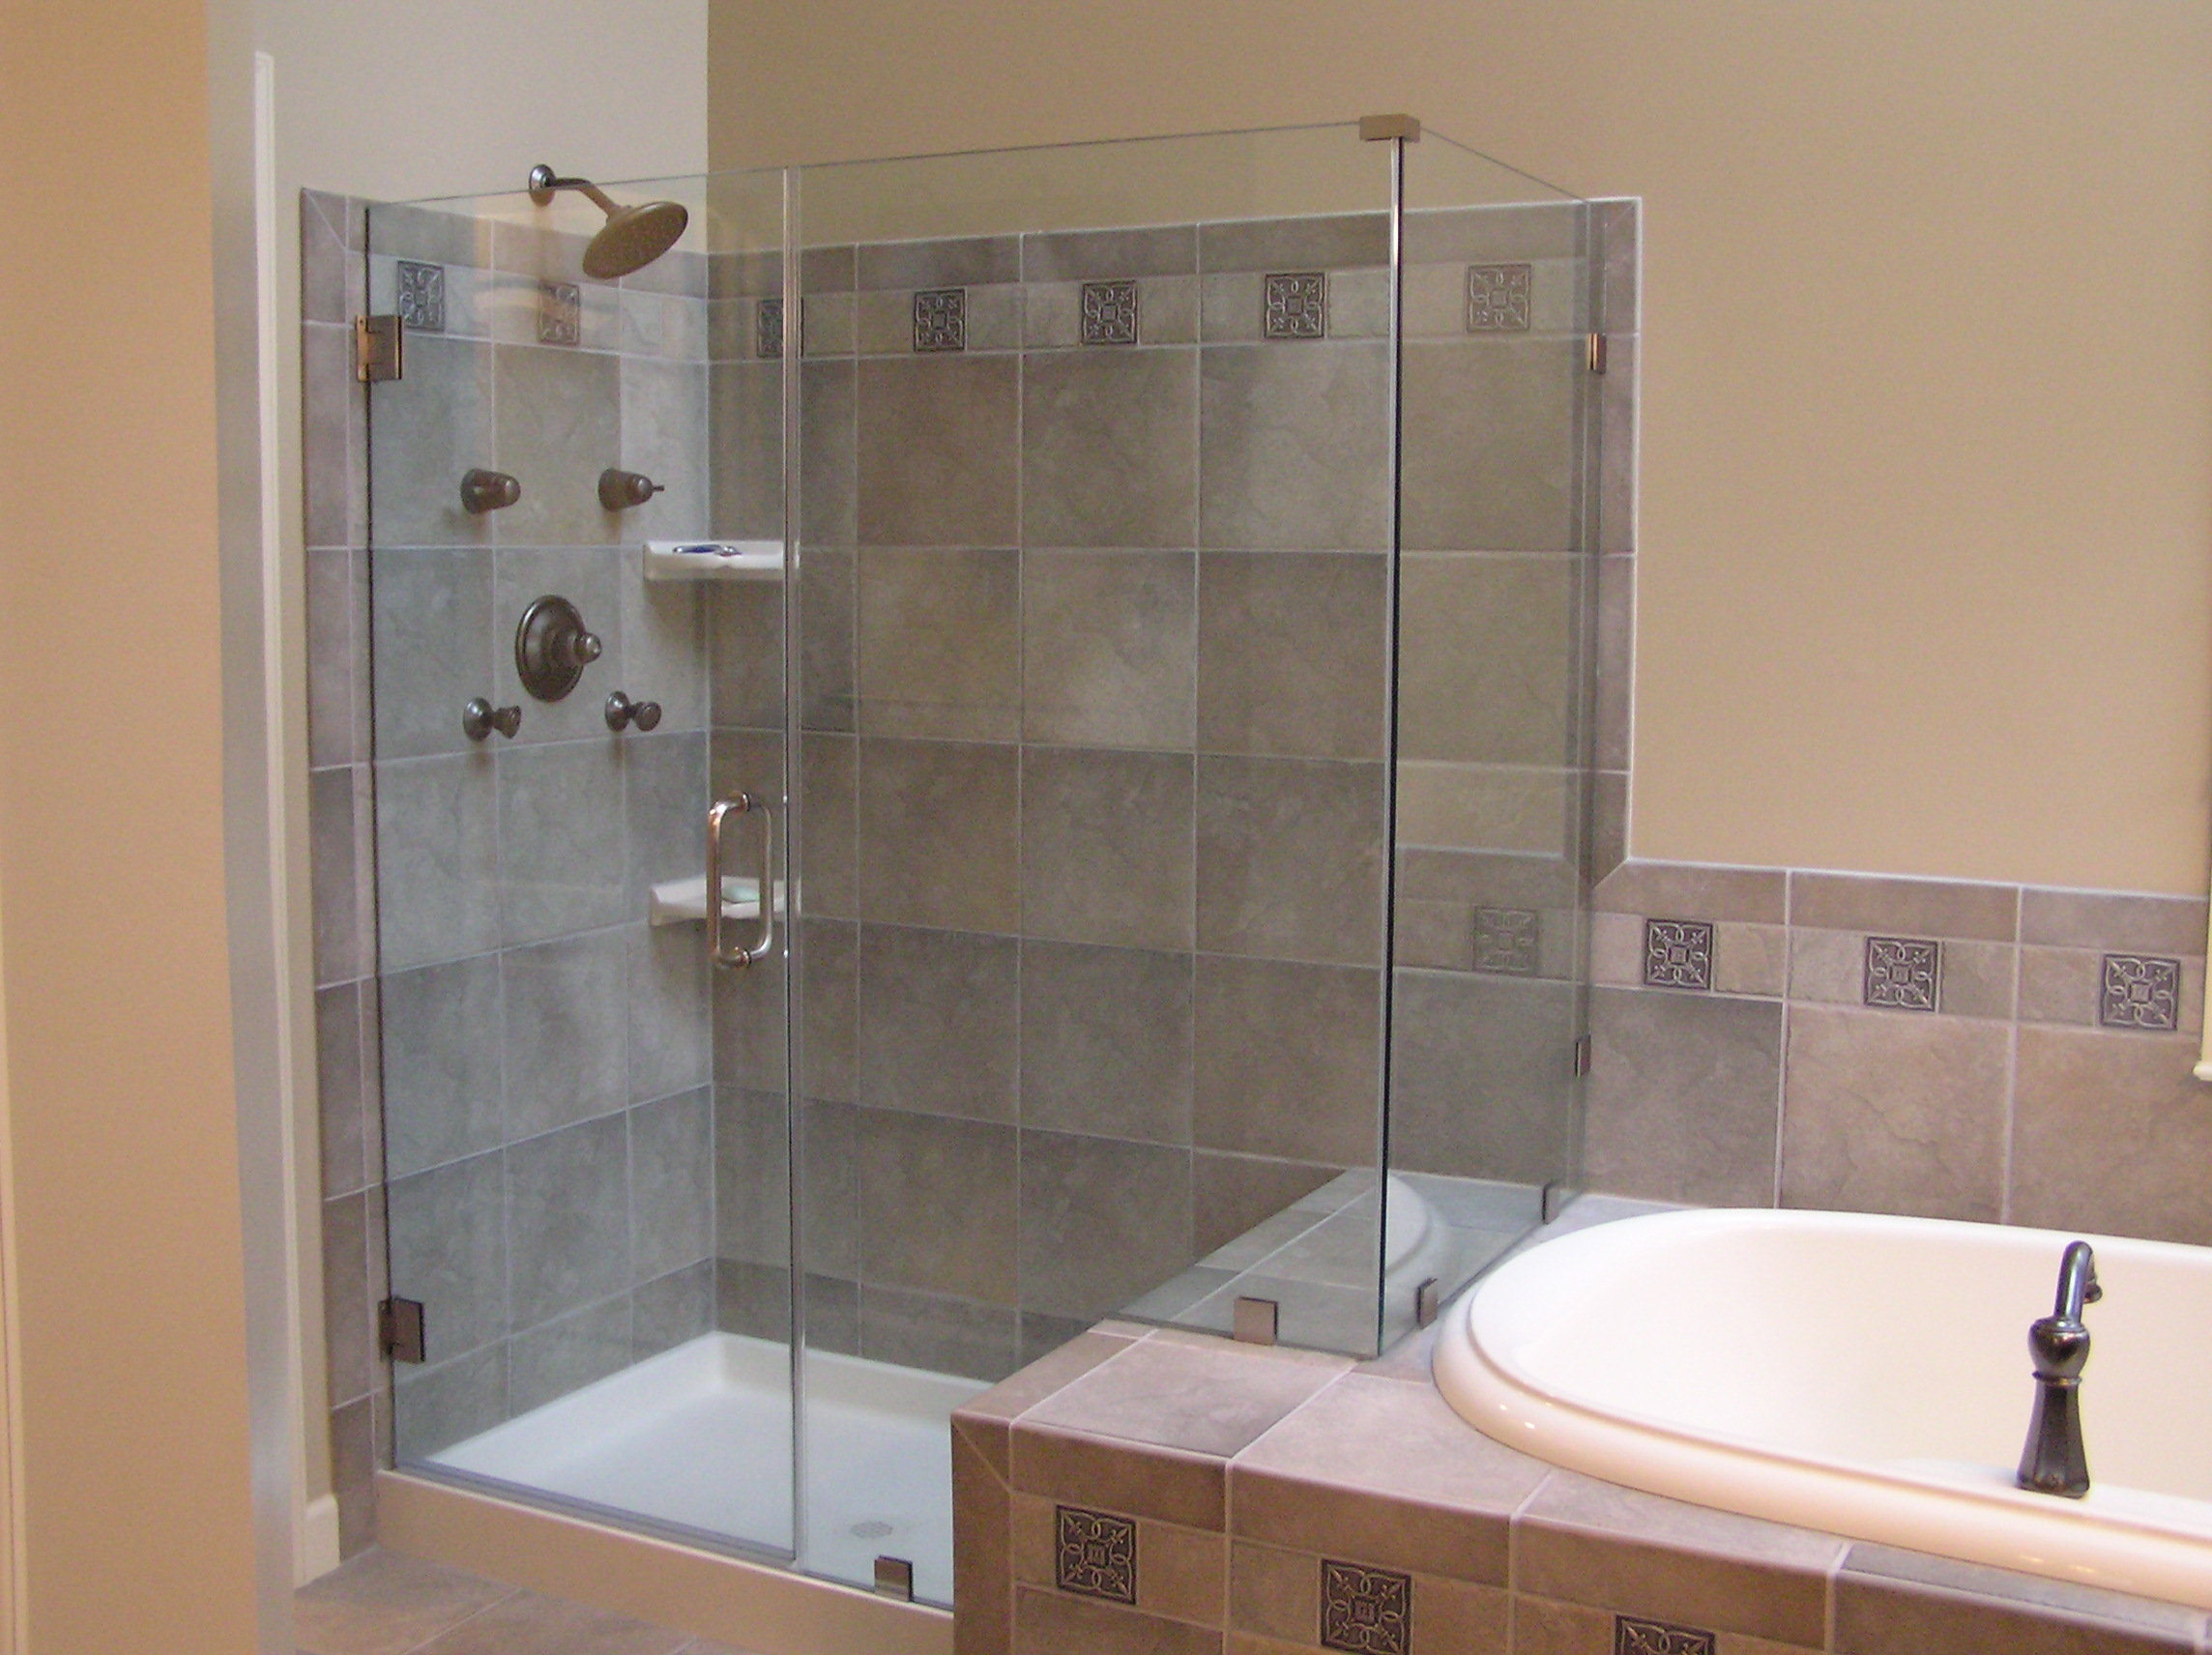 Handicap Bathroom Remodeling Costs small bathroom remodel cost - large and beautiful photos. photo to